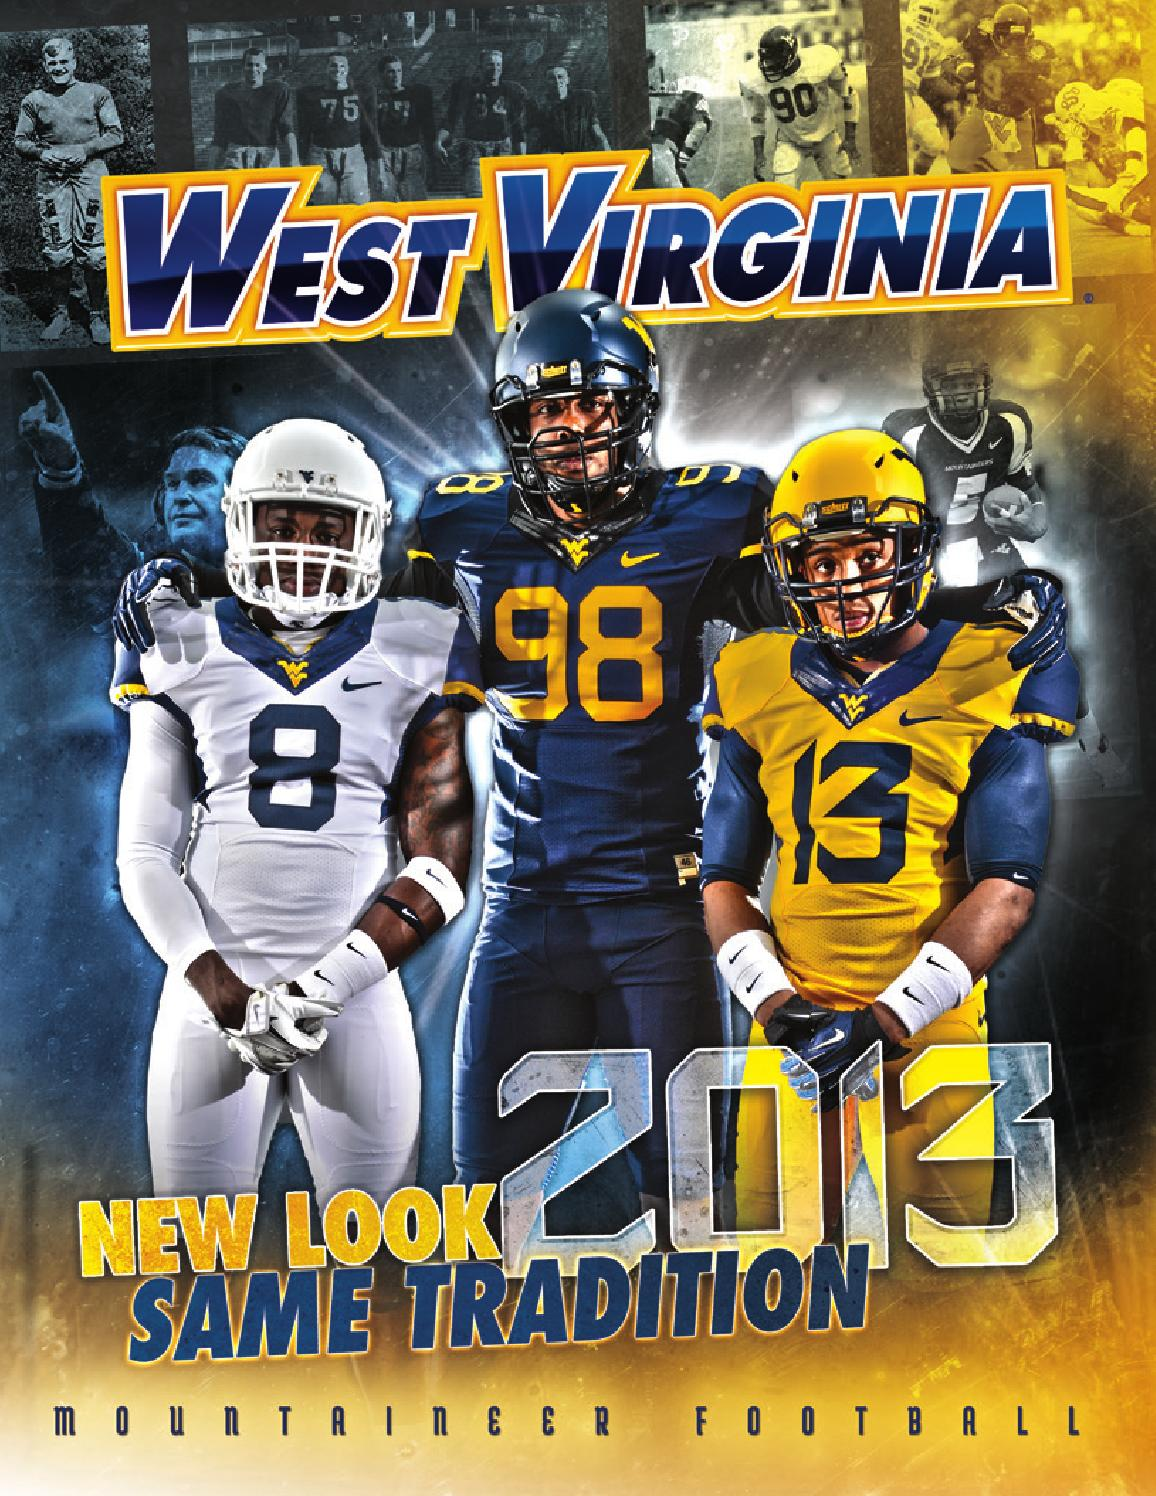 sports shoes df1f4 56462 2013 West Virginia University Football Guide by Joe Swan - issuu